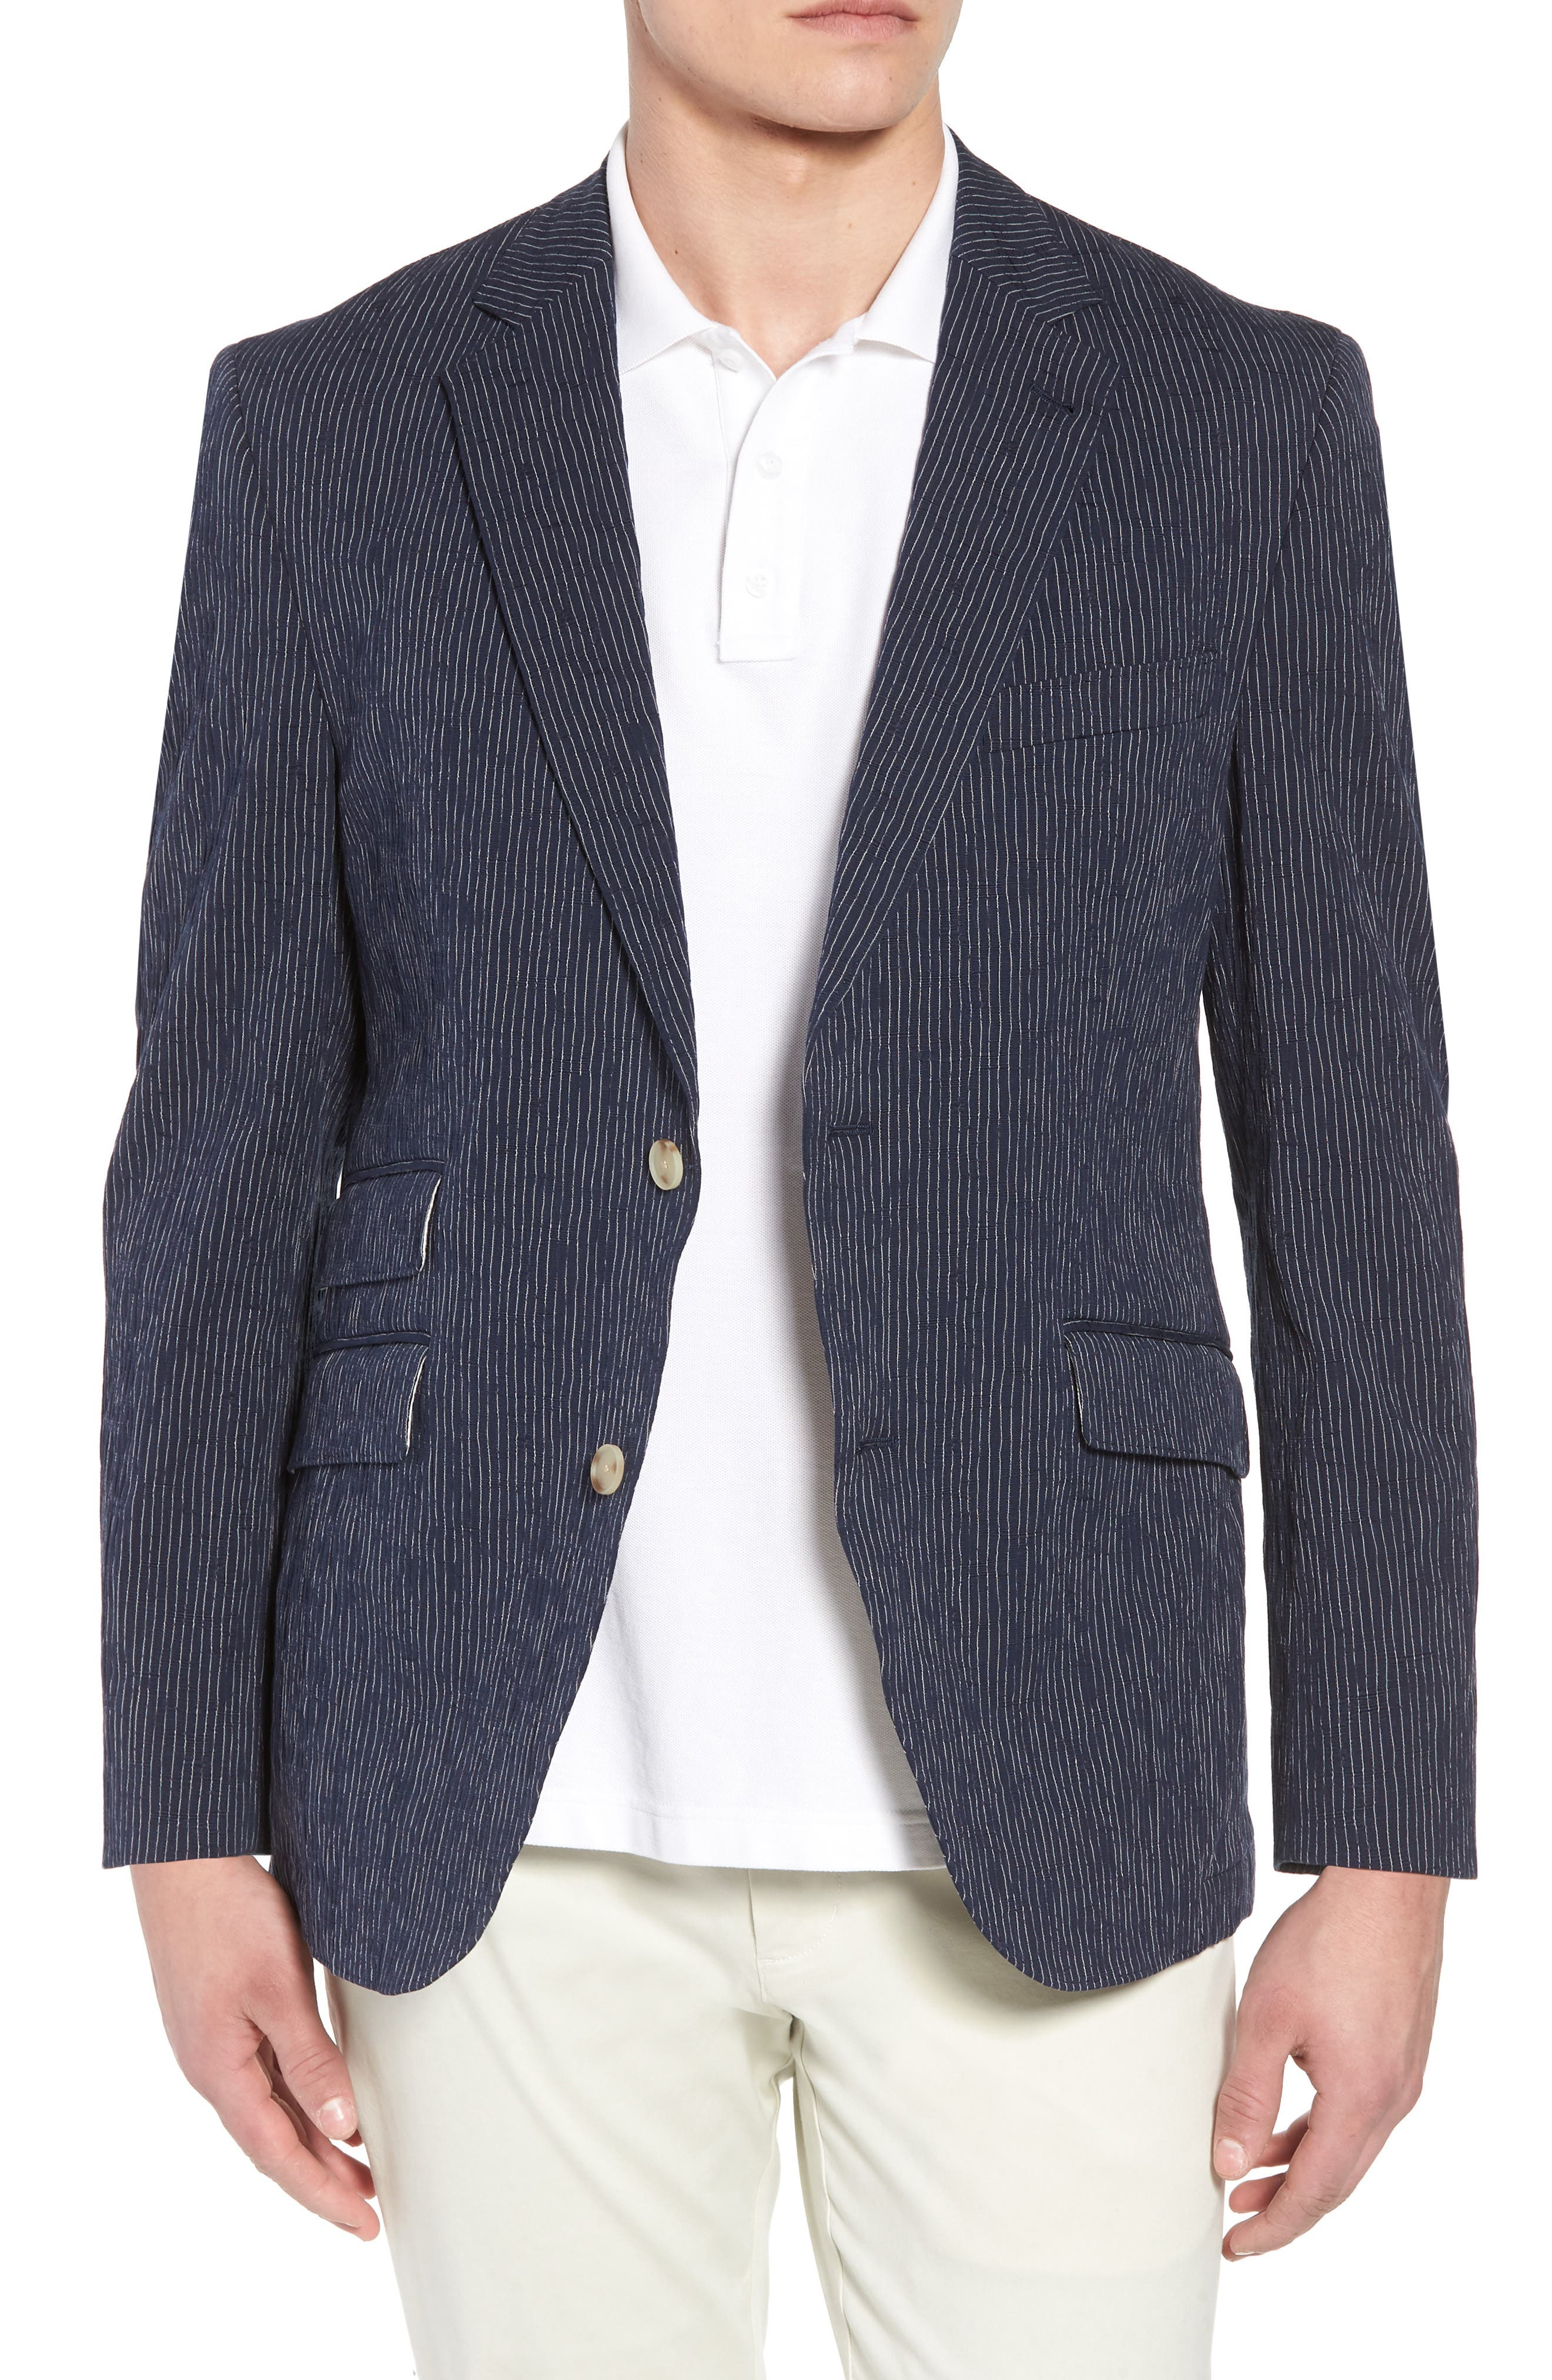 Sting AIM Classic Fit Stretch Stripe Cotton Sport Coat,                         Main,                         color, 410